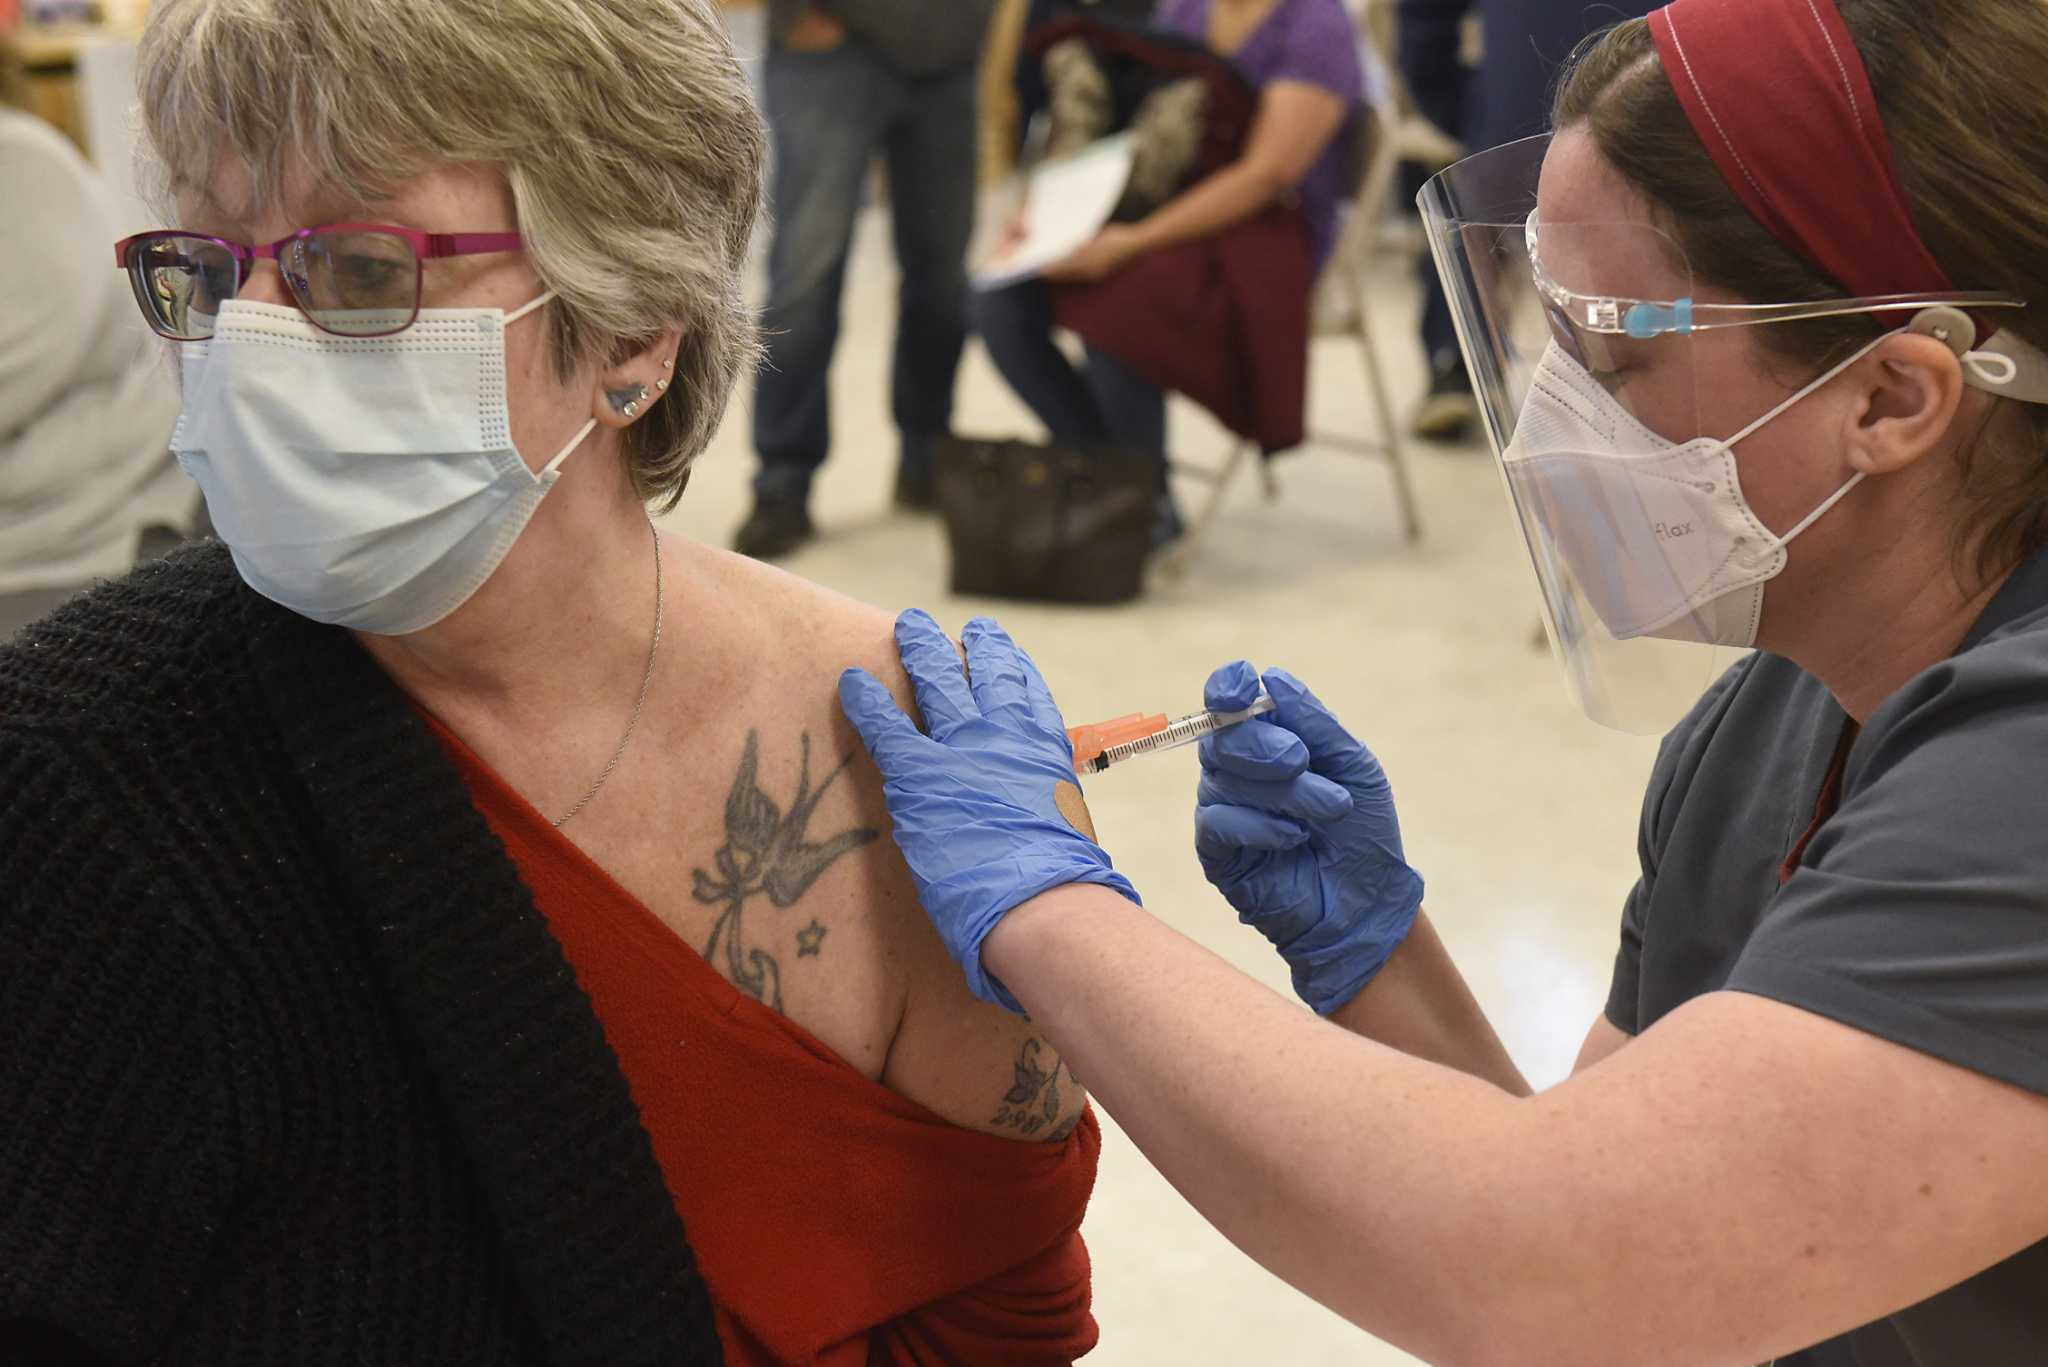 'Please register,' officials plead as vaccine supply increases - Times Union